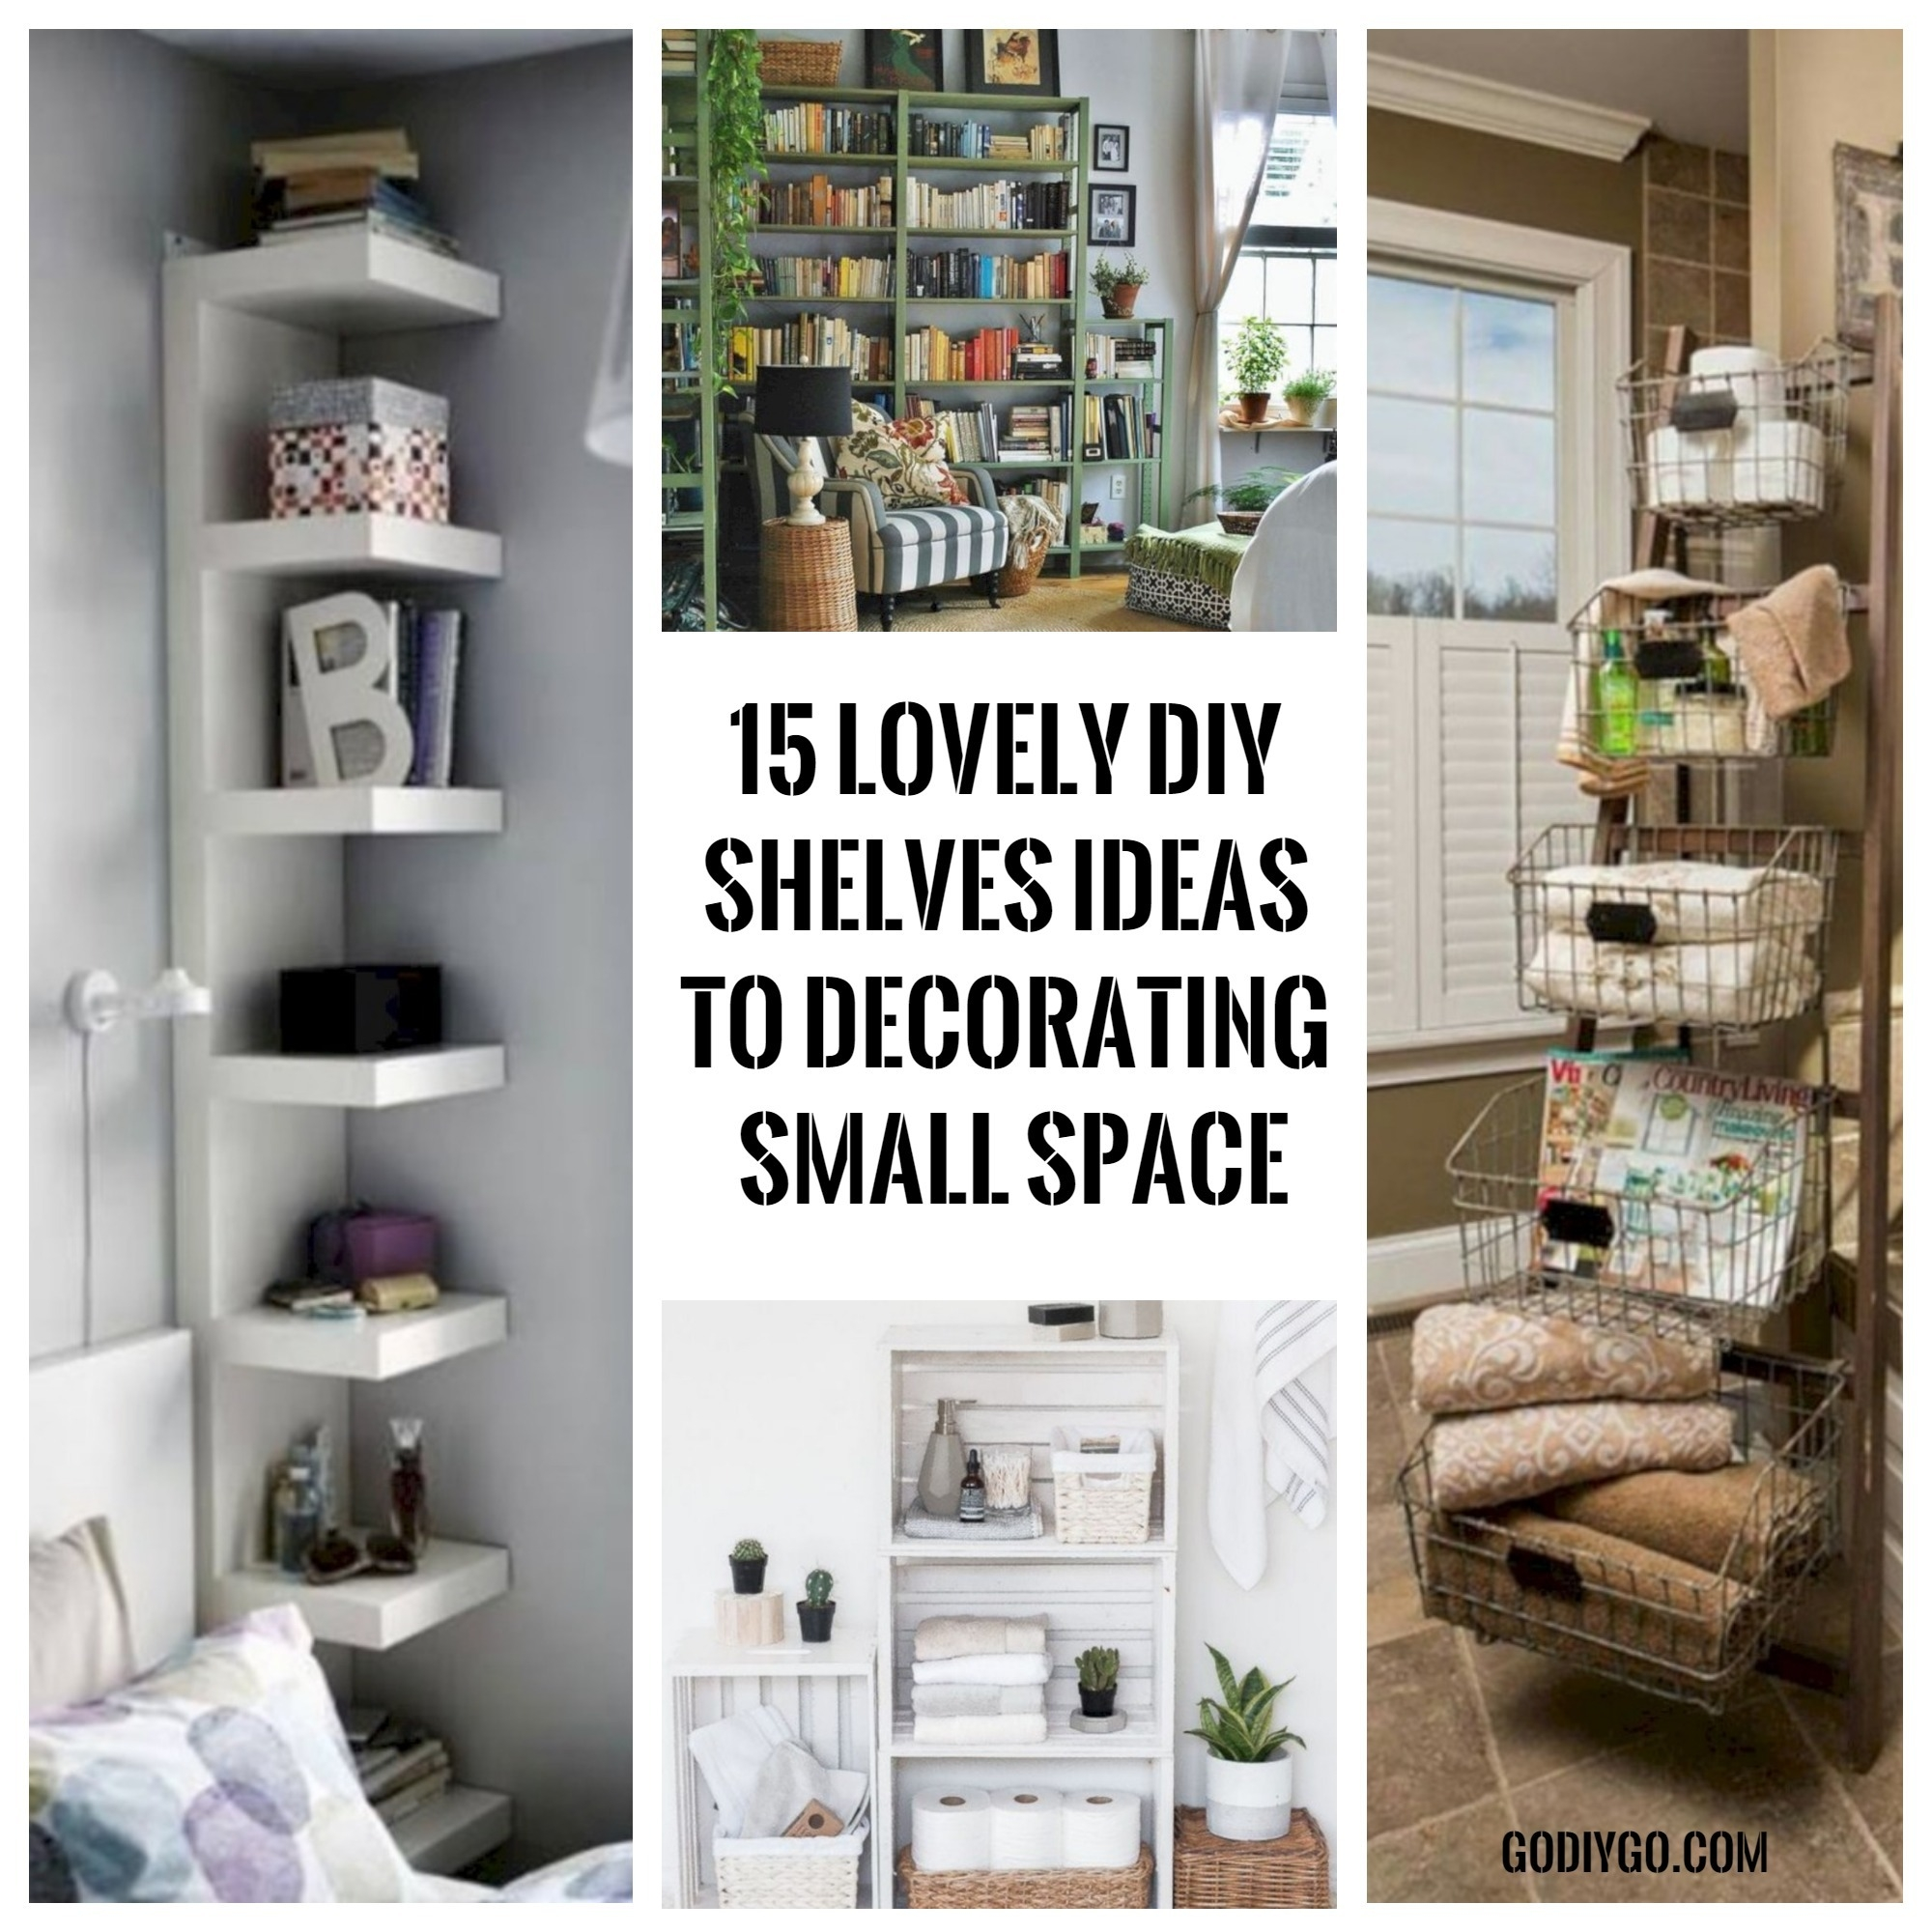 15 Lovely DIY Shelves Ideas to Decorating Small Space ...